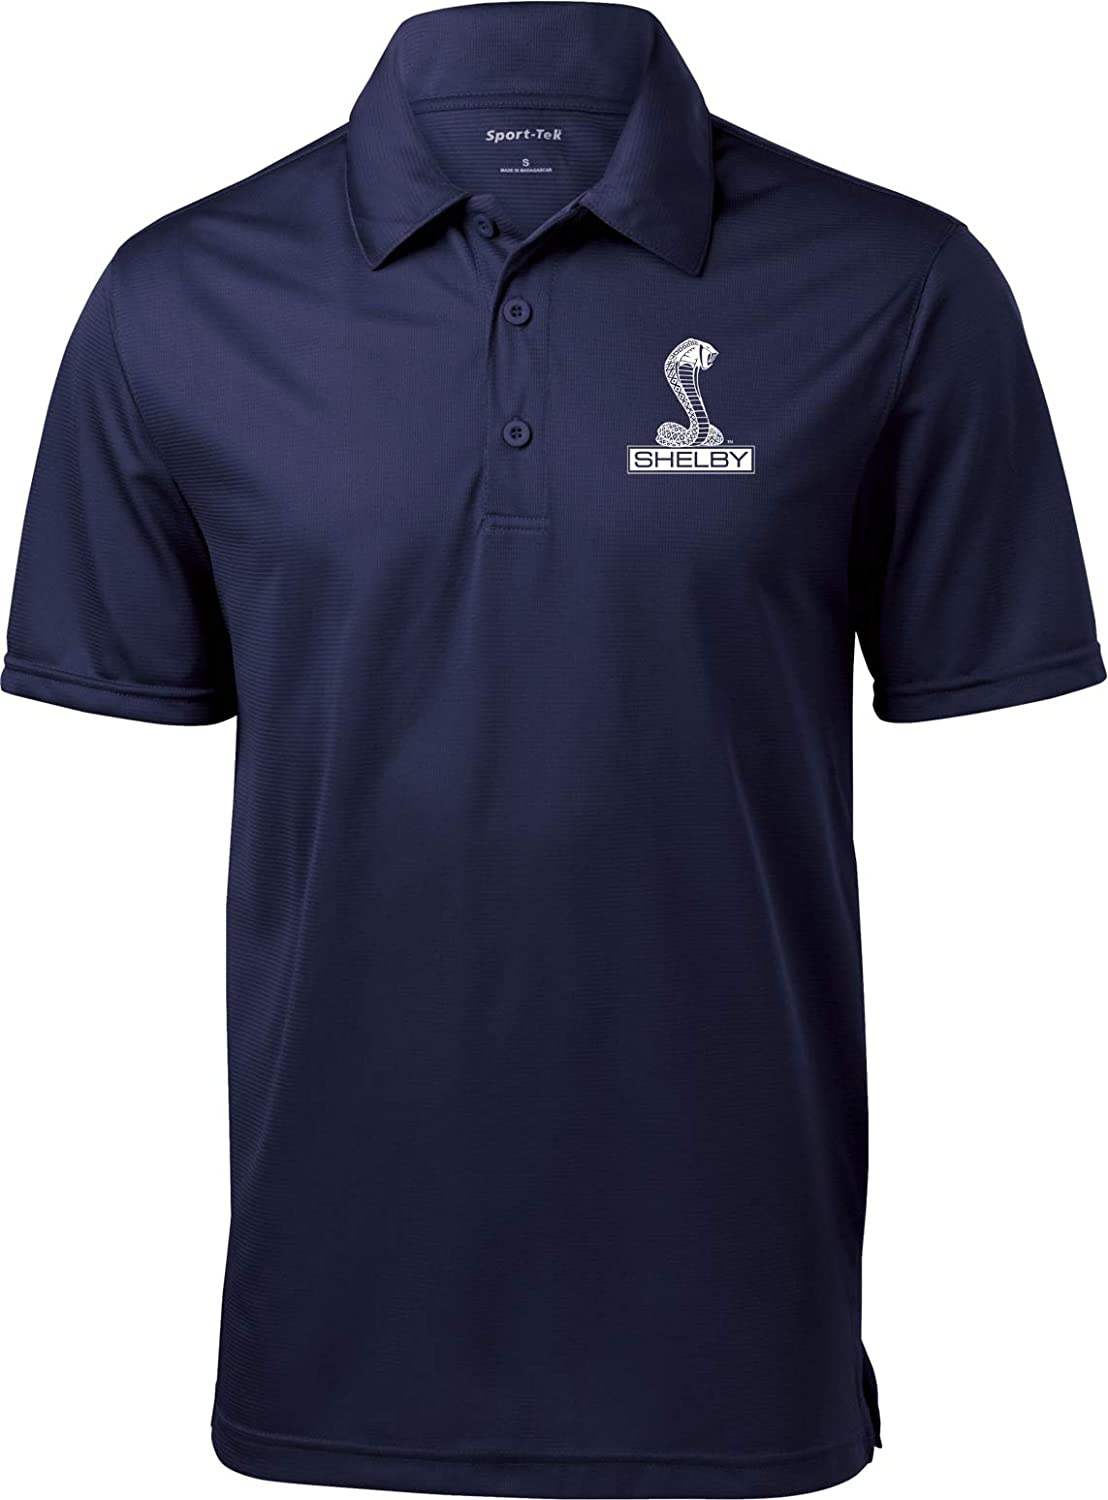 Ford Shelby Cobra Pocket Print Textured Polo, Navy 4XL